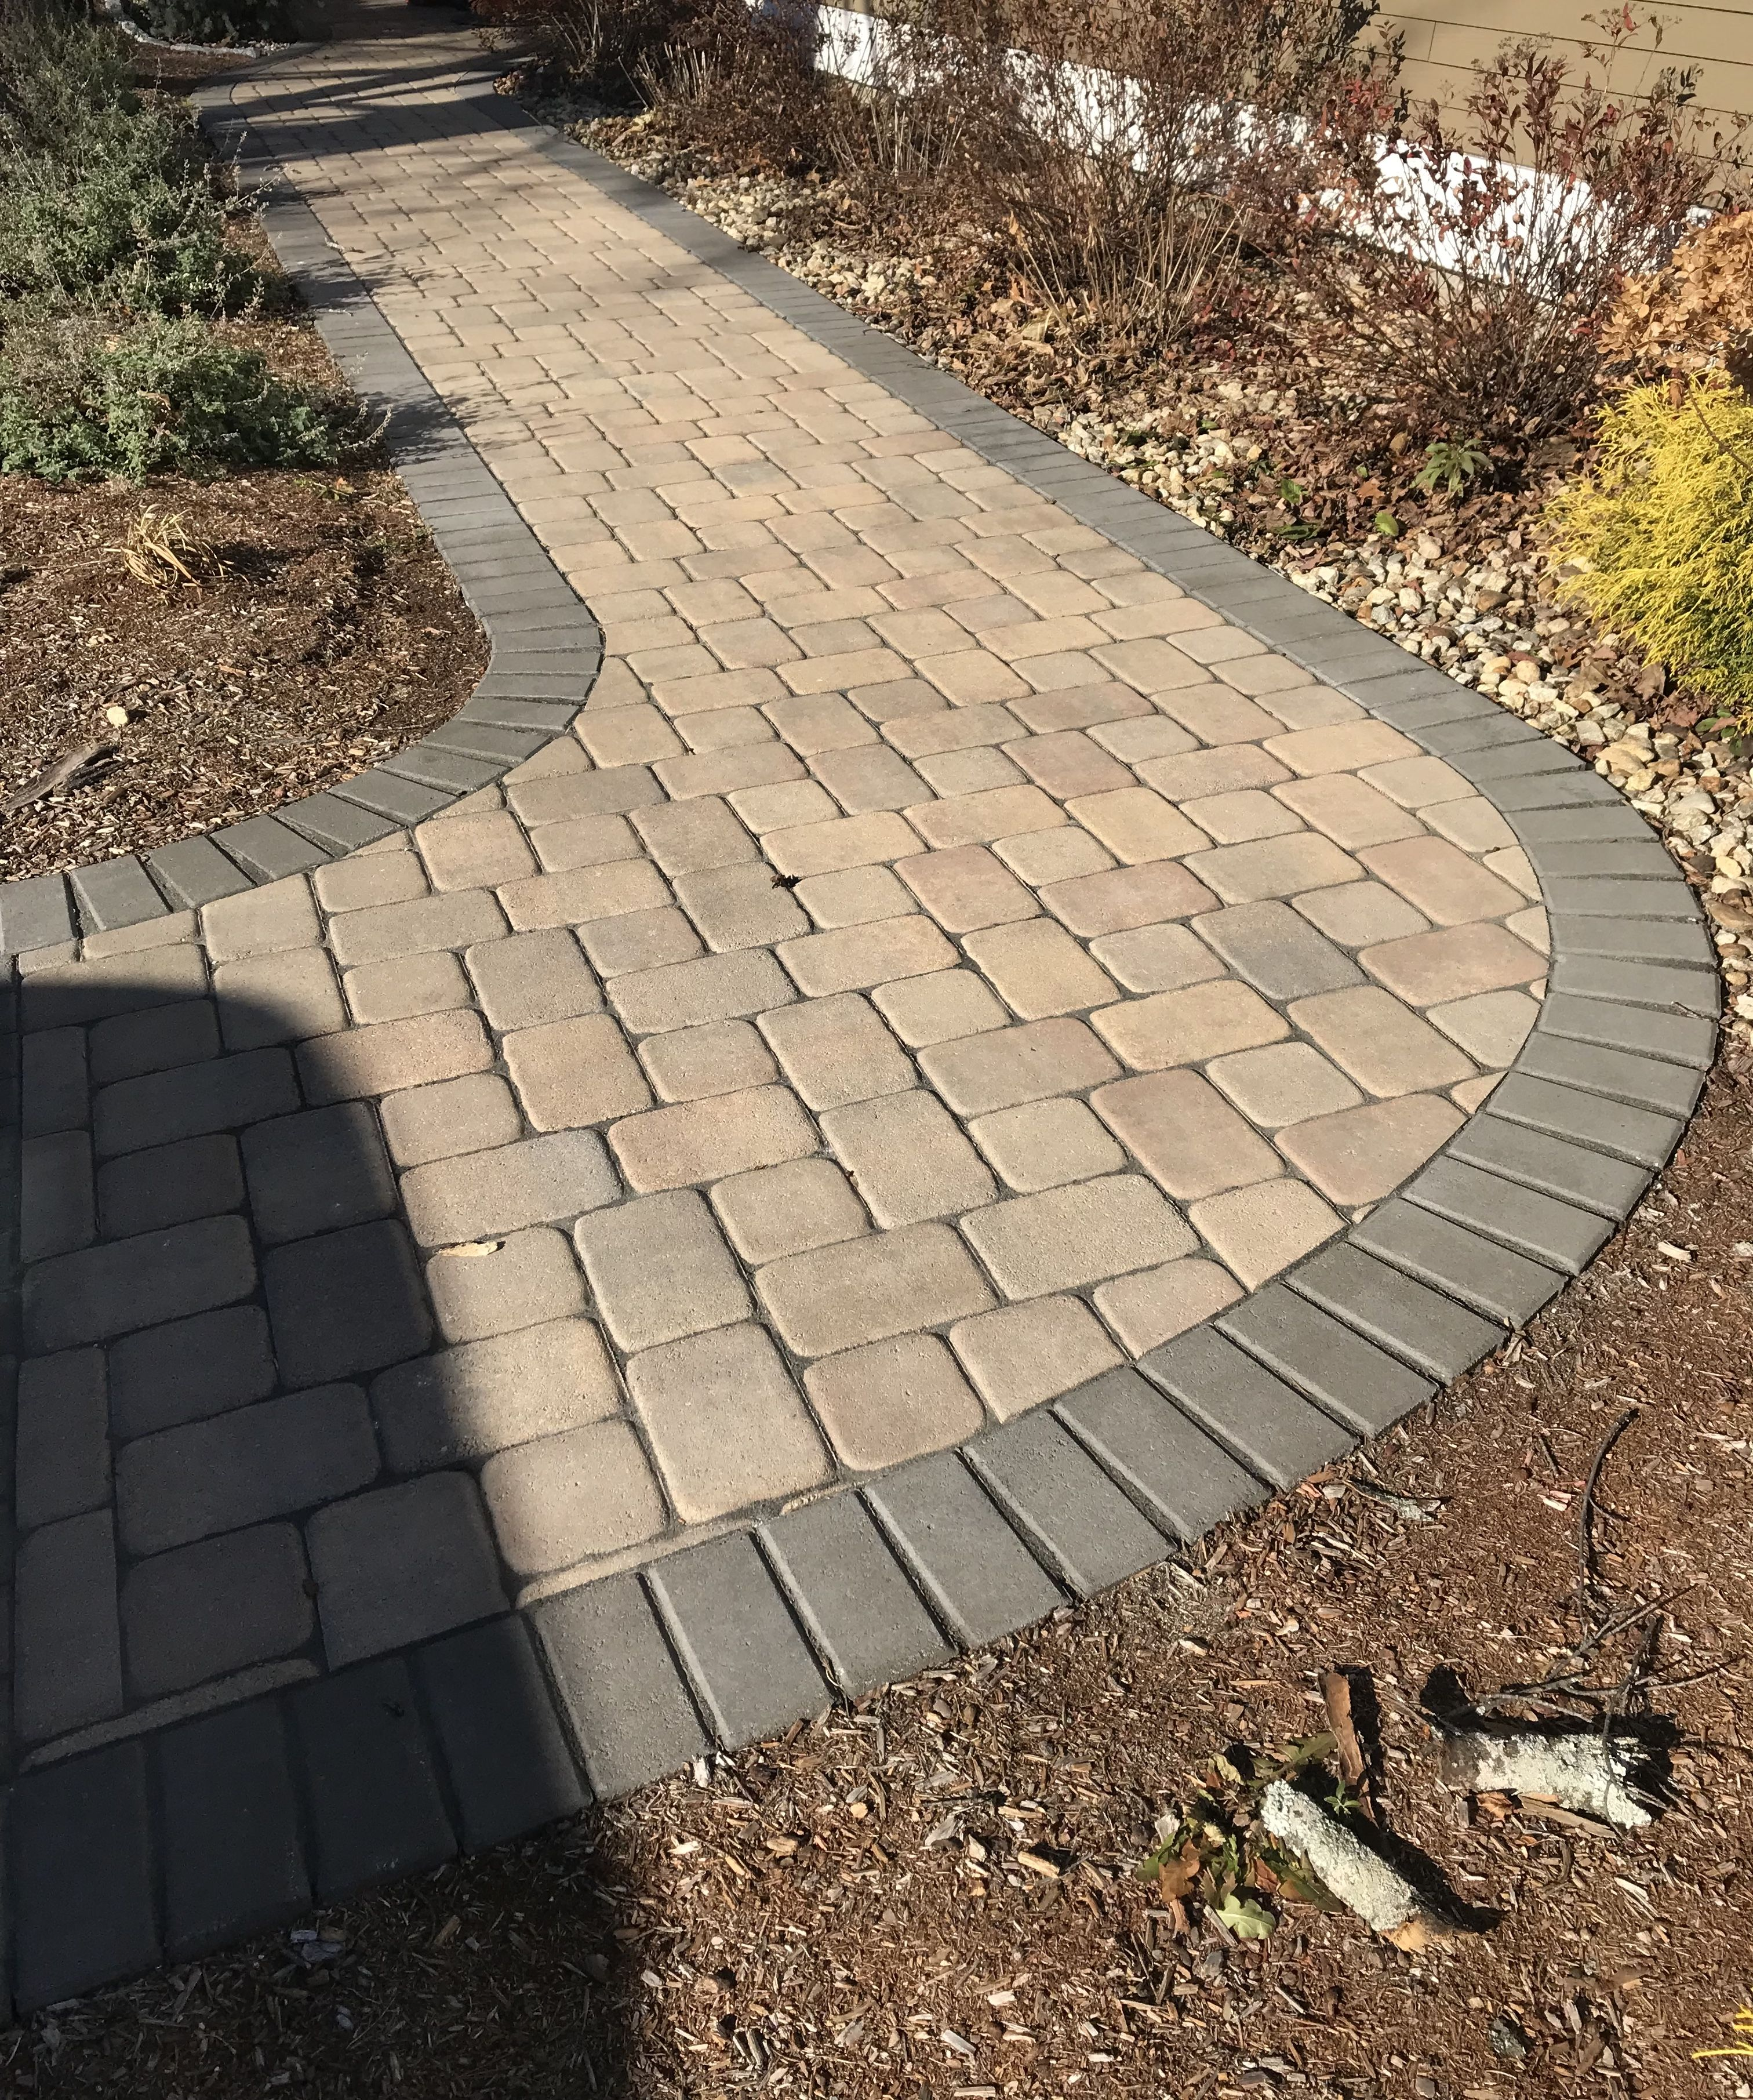 Belgard London Cobble Danville Rectangles And Square Walkway With A Charcoal Holland Stone Border Landscaping Tools Hardscape Paver Designs